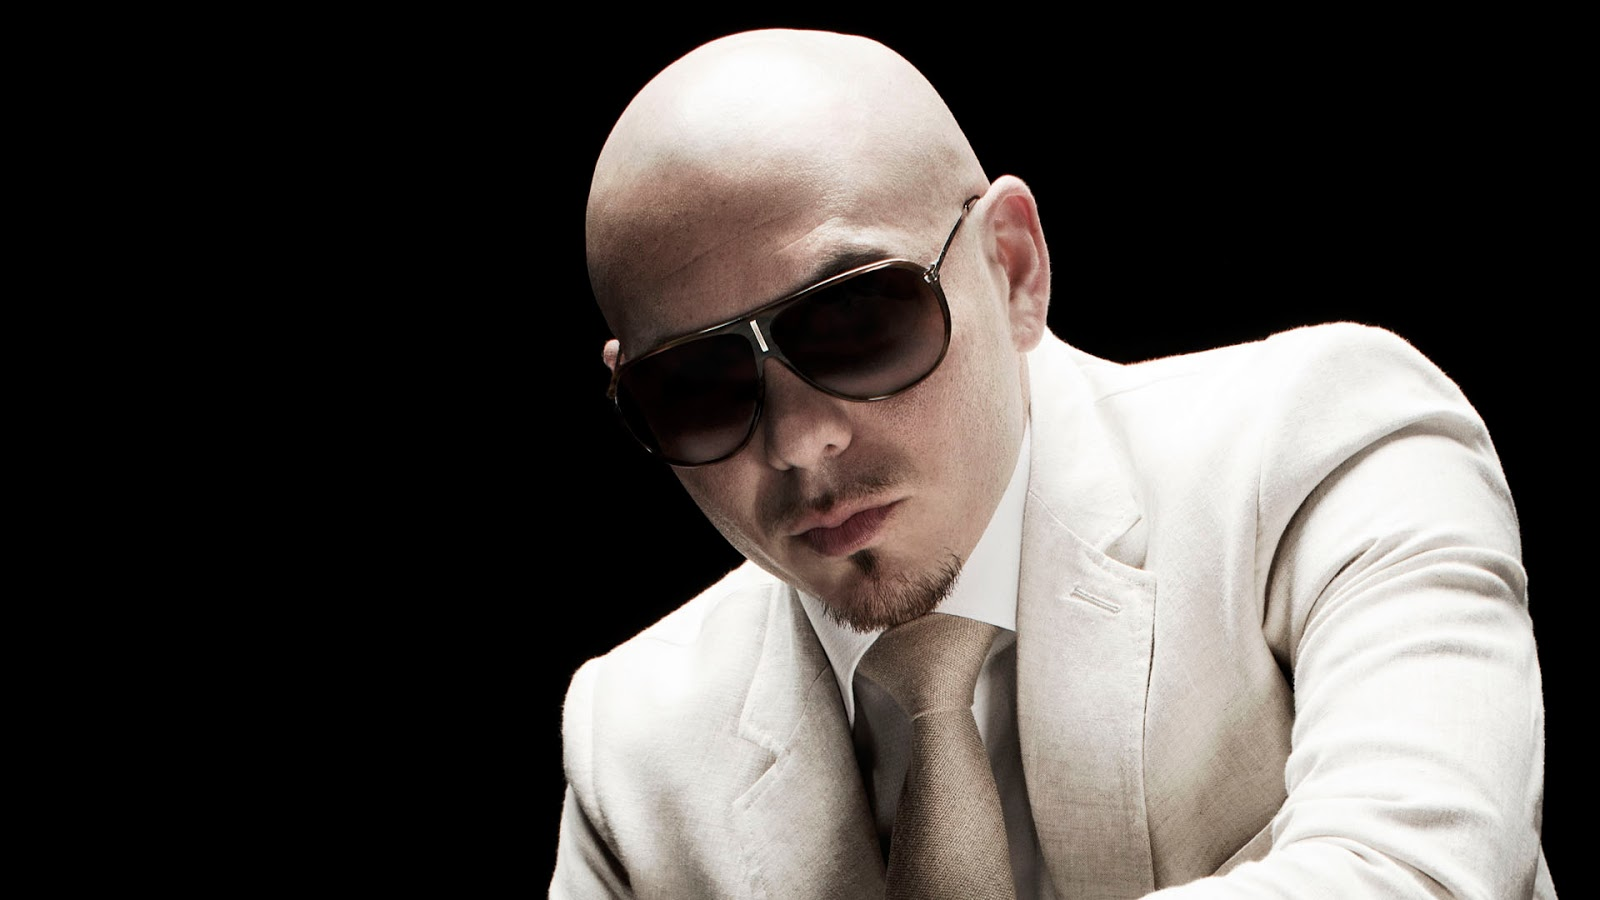 fotos de pitbull 2